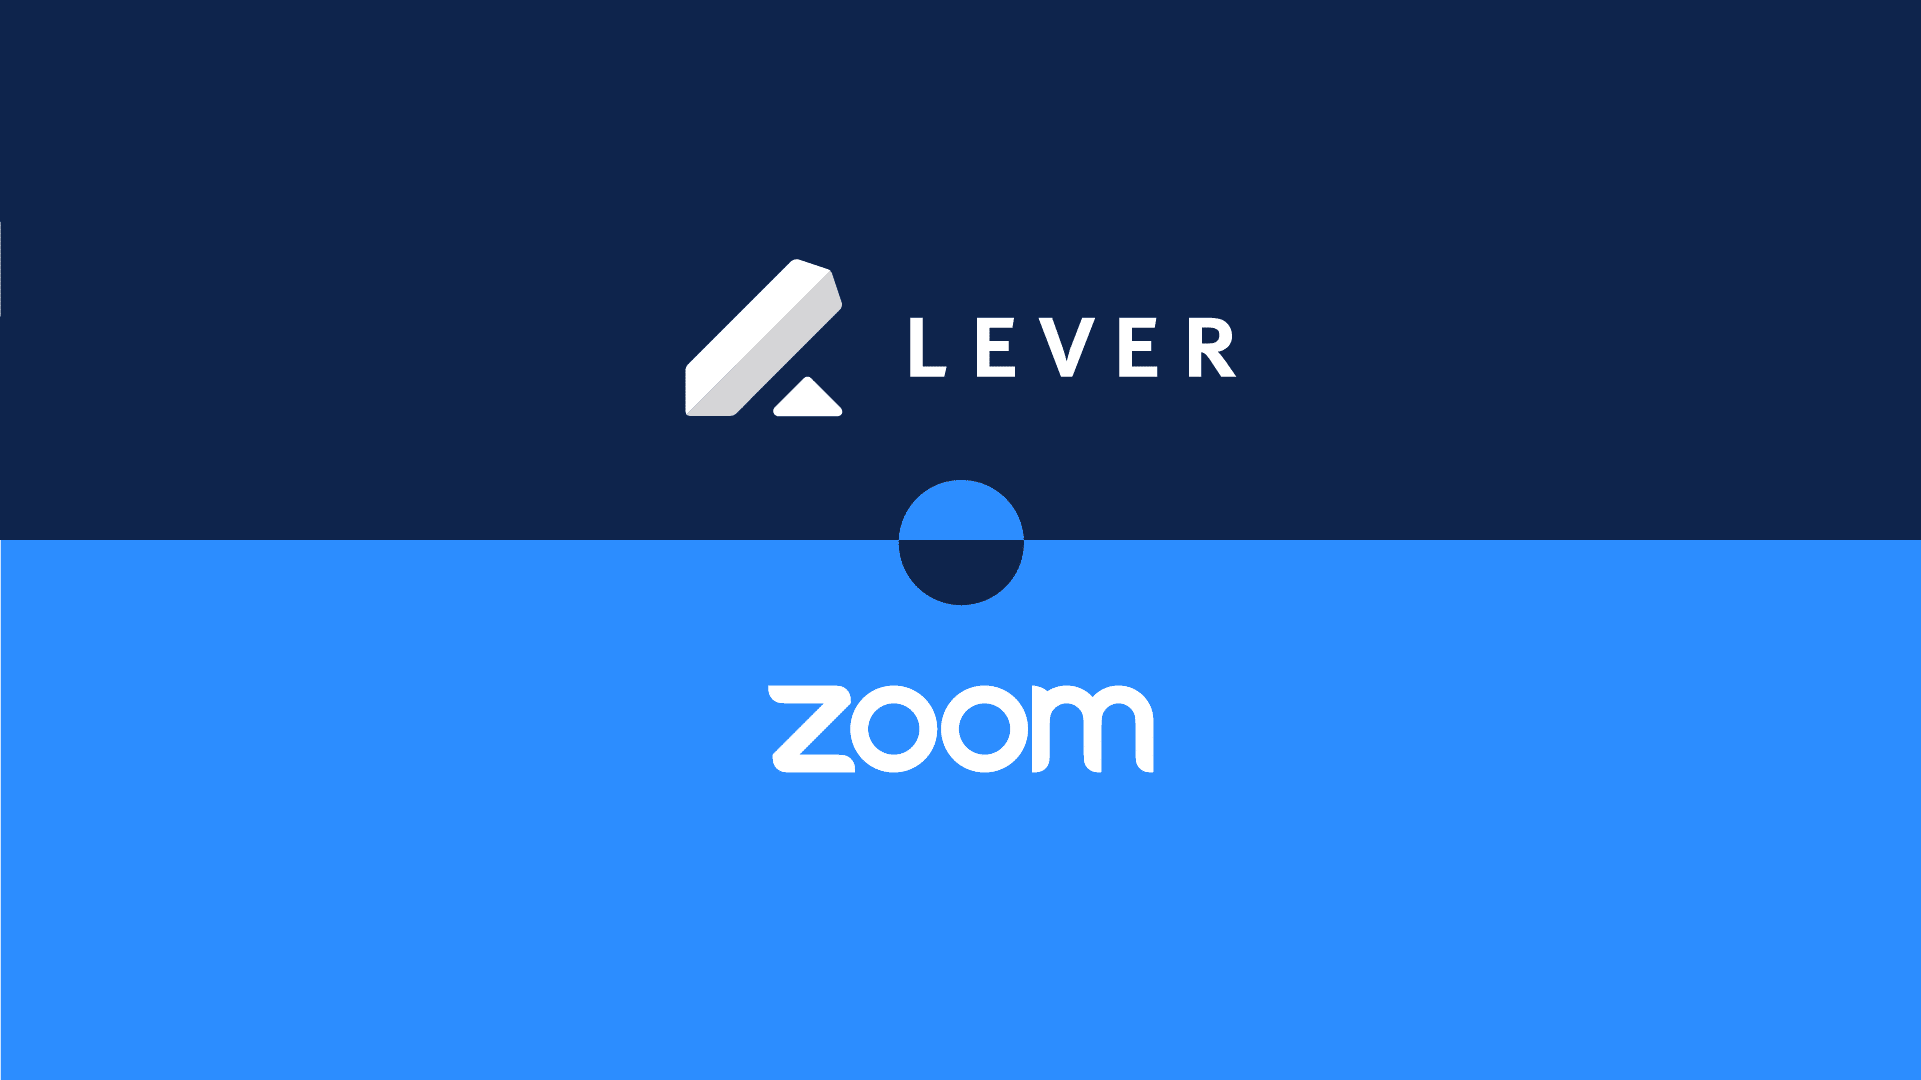 Zoom and Lever Blog Announcement Banner